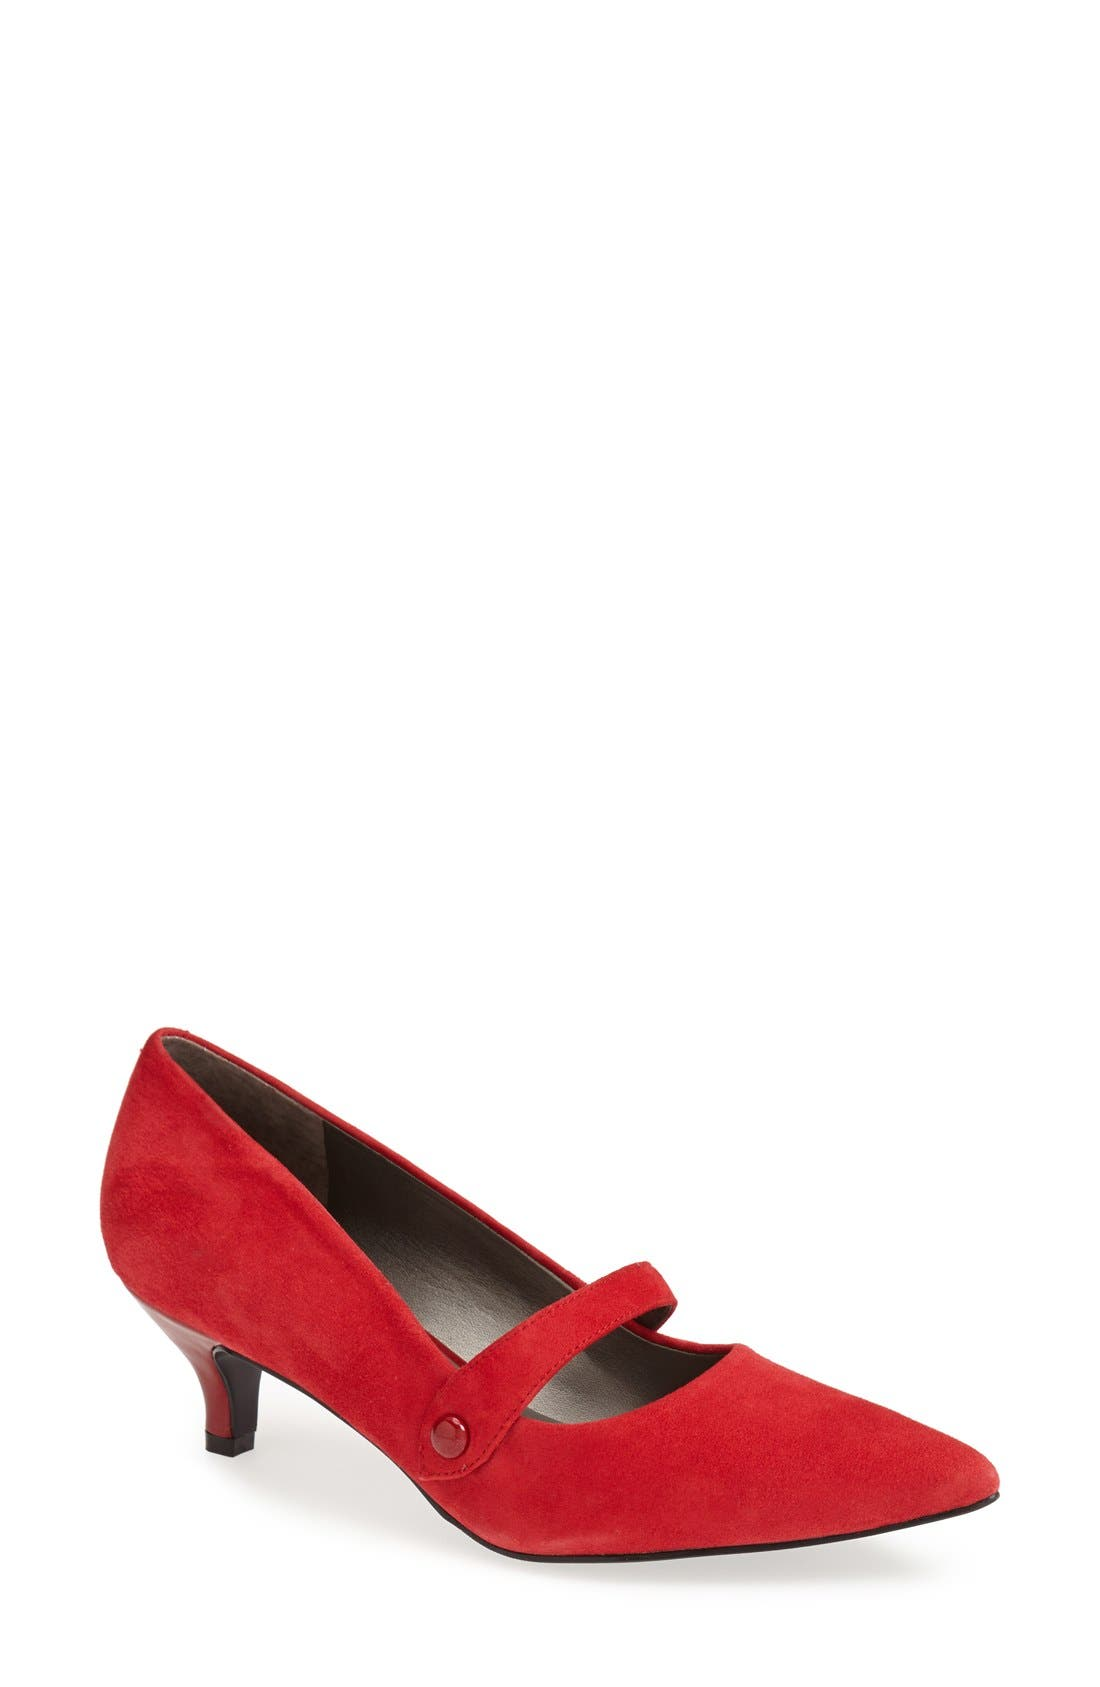 a5c7be456a6 mary jane pumps